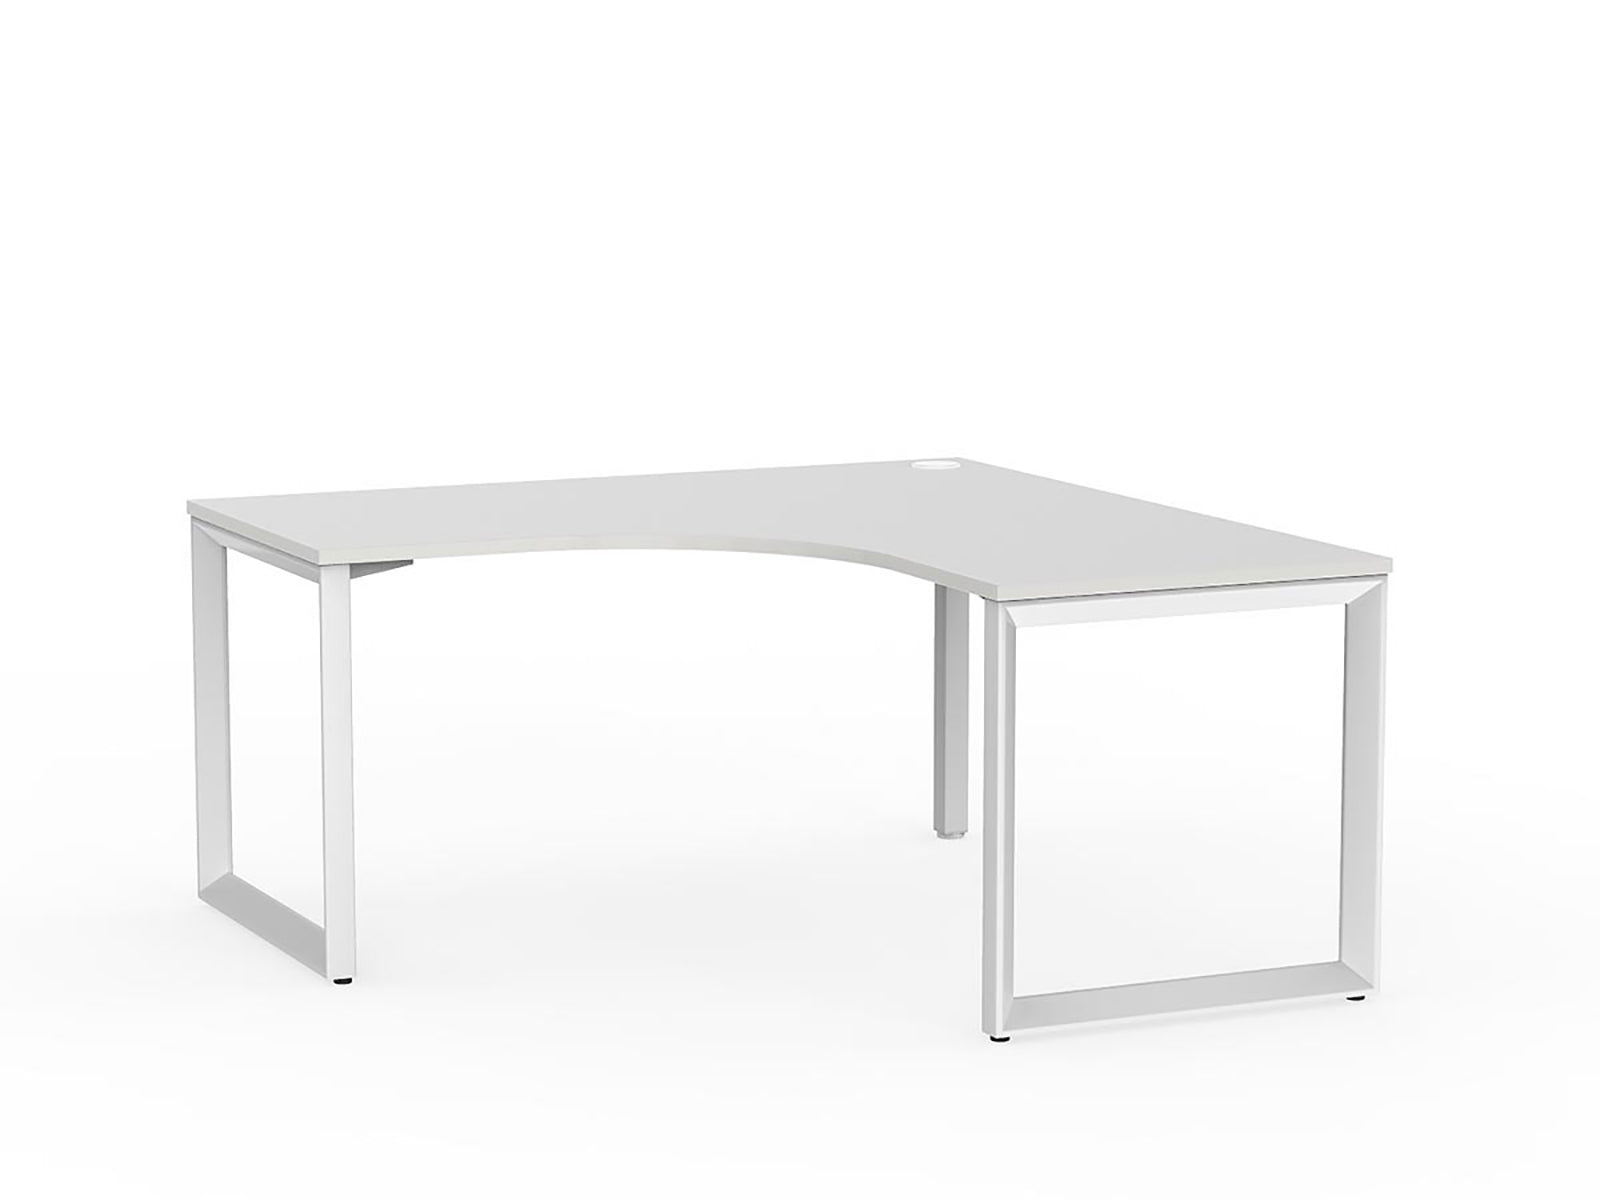 Anvil 1.5m Workstation - Workspace Furniture Home and Office Desks